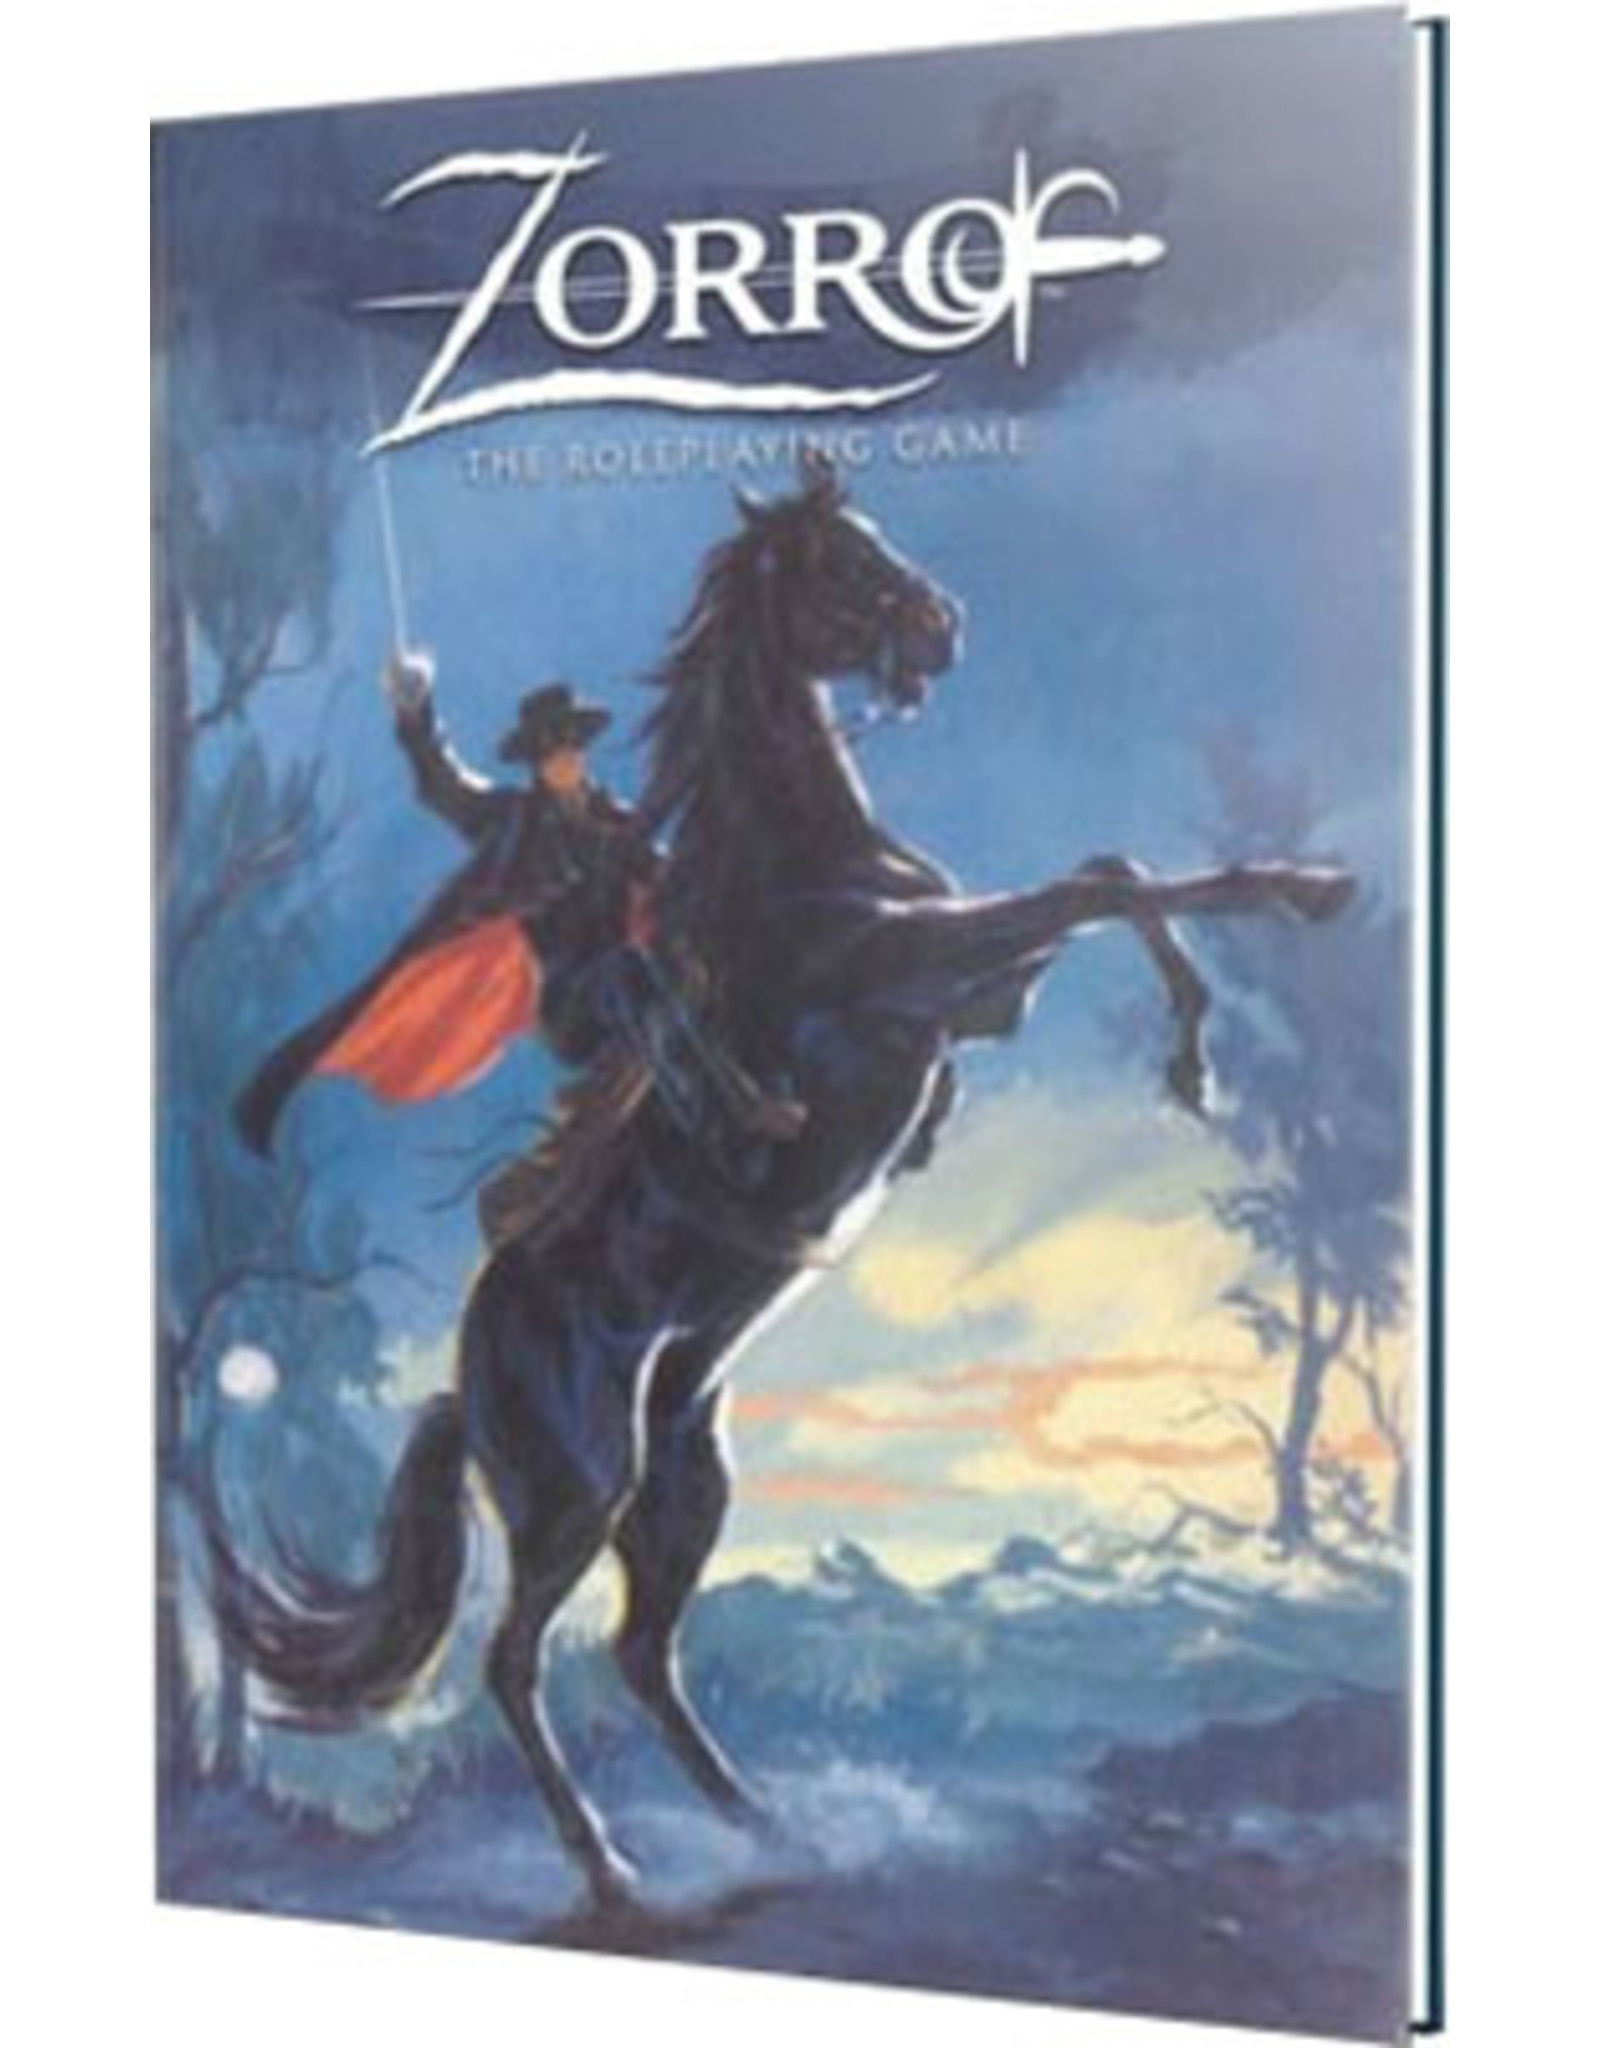 Zorro: The Roleplaying Game